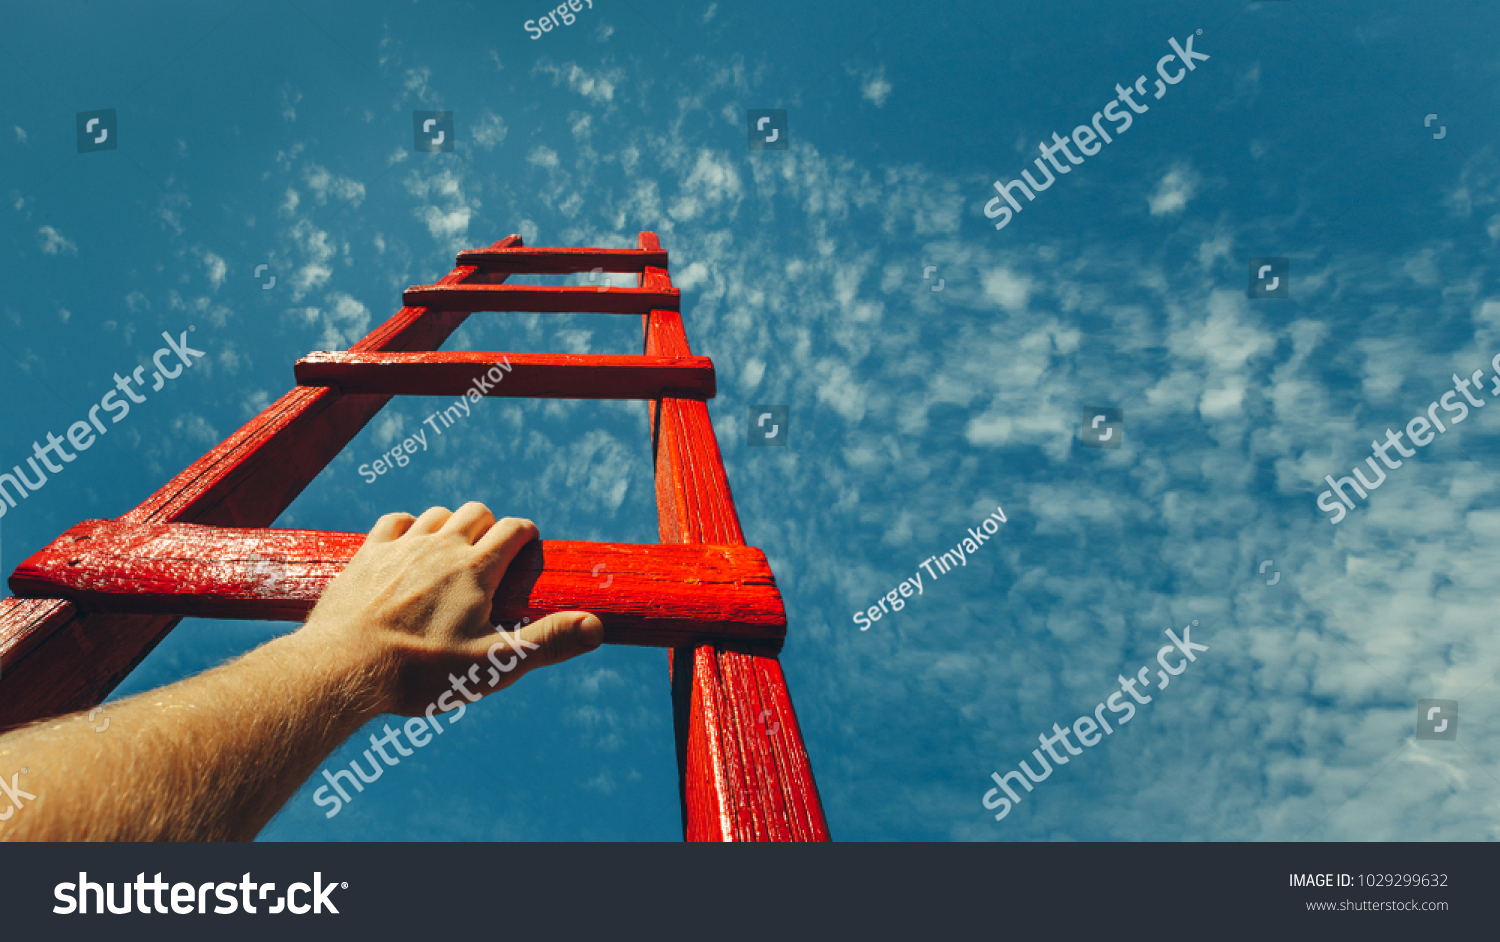 Development Attainment Motivation Career Growth Concept. Mans Hand Reaching For Red Ladder Leading To A Blue Sky #1029299632 - 123PhotoFree.com